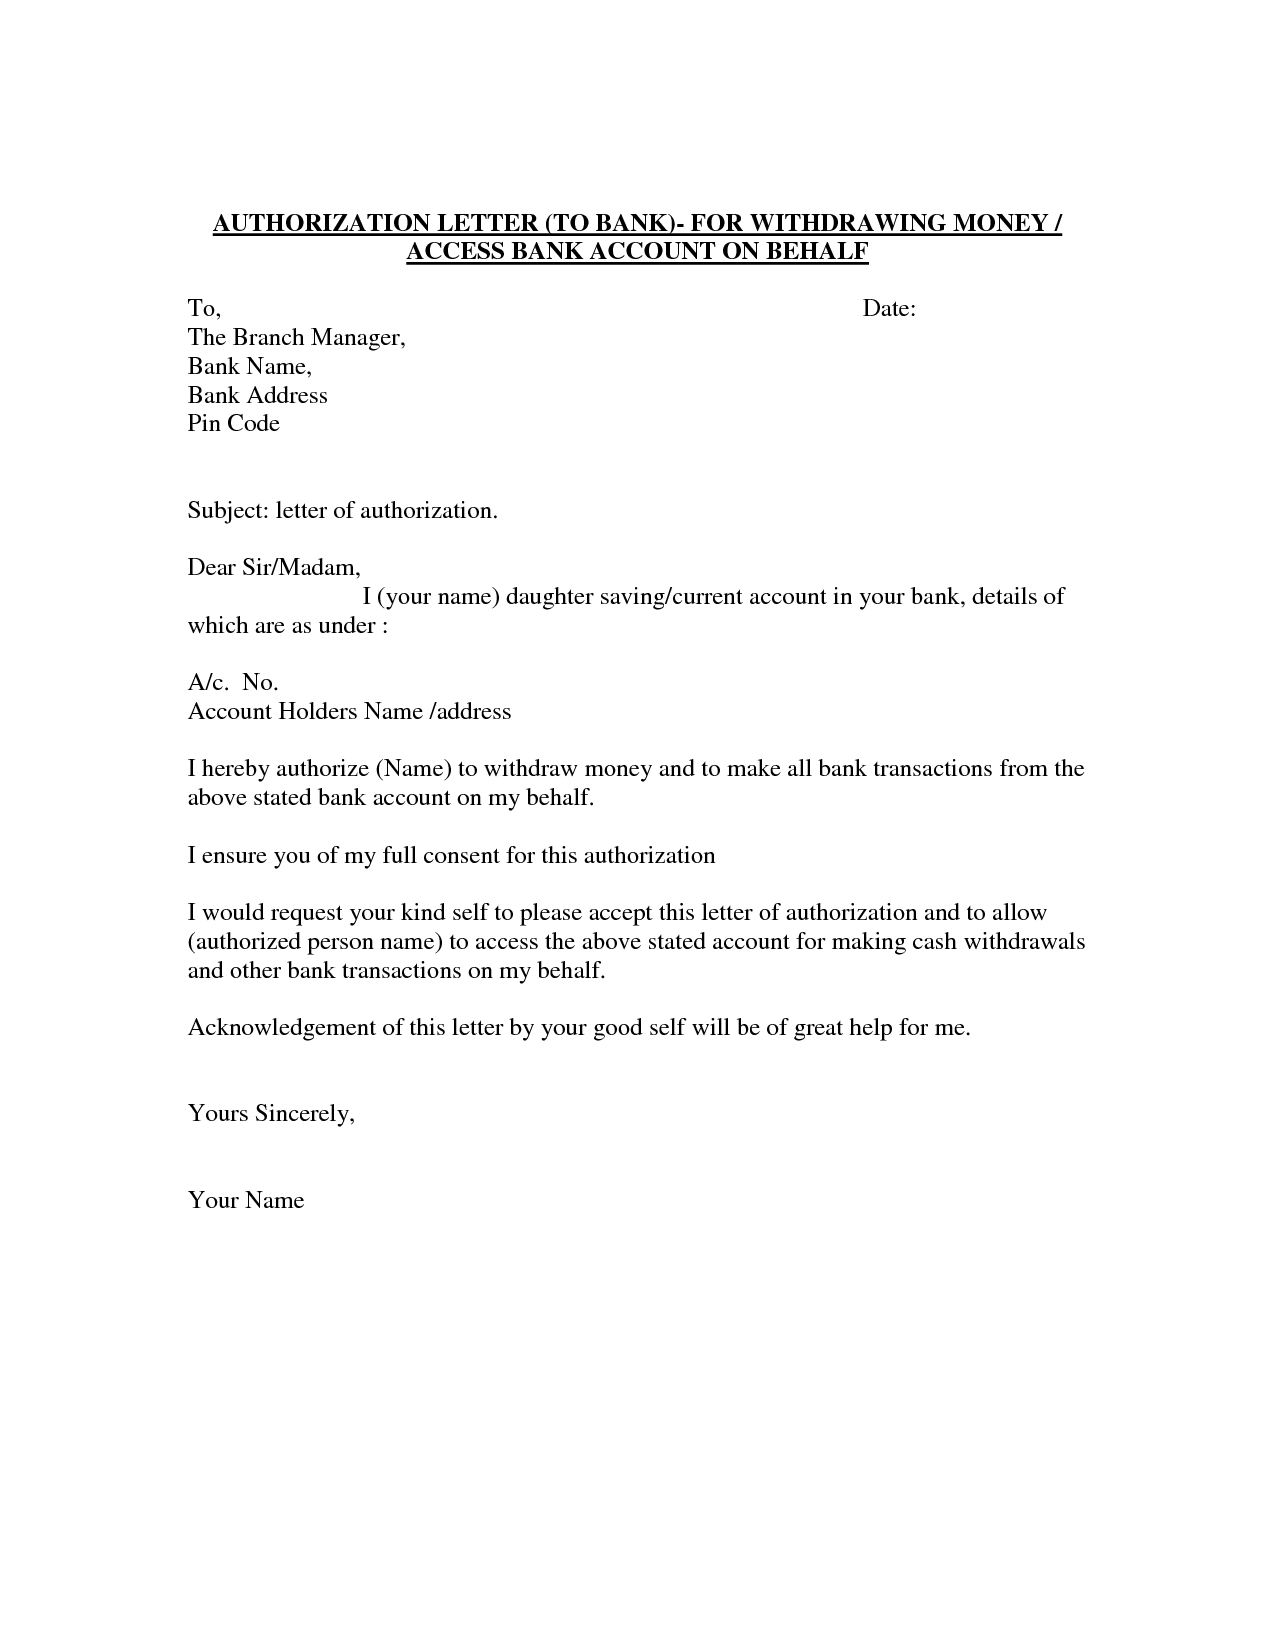 Company Letter Template - Authorization Letter Template Best Car Galleryformal Letter